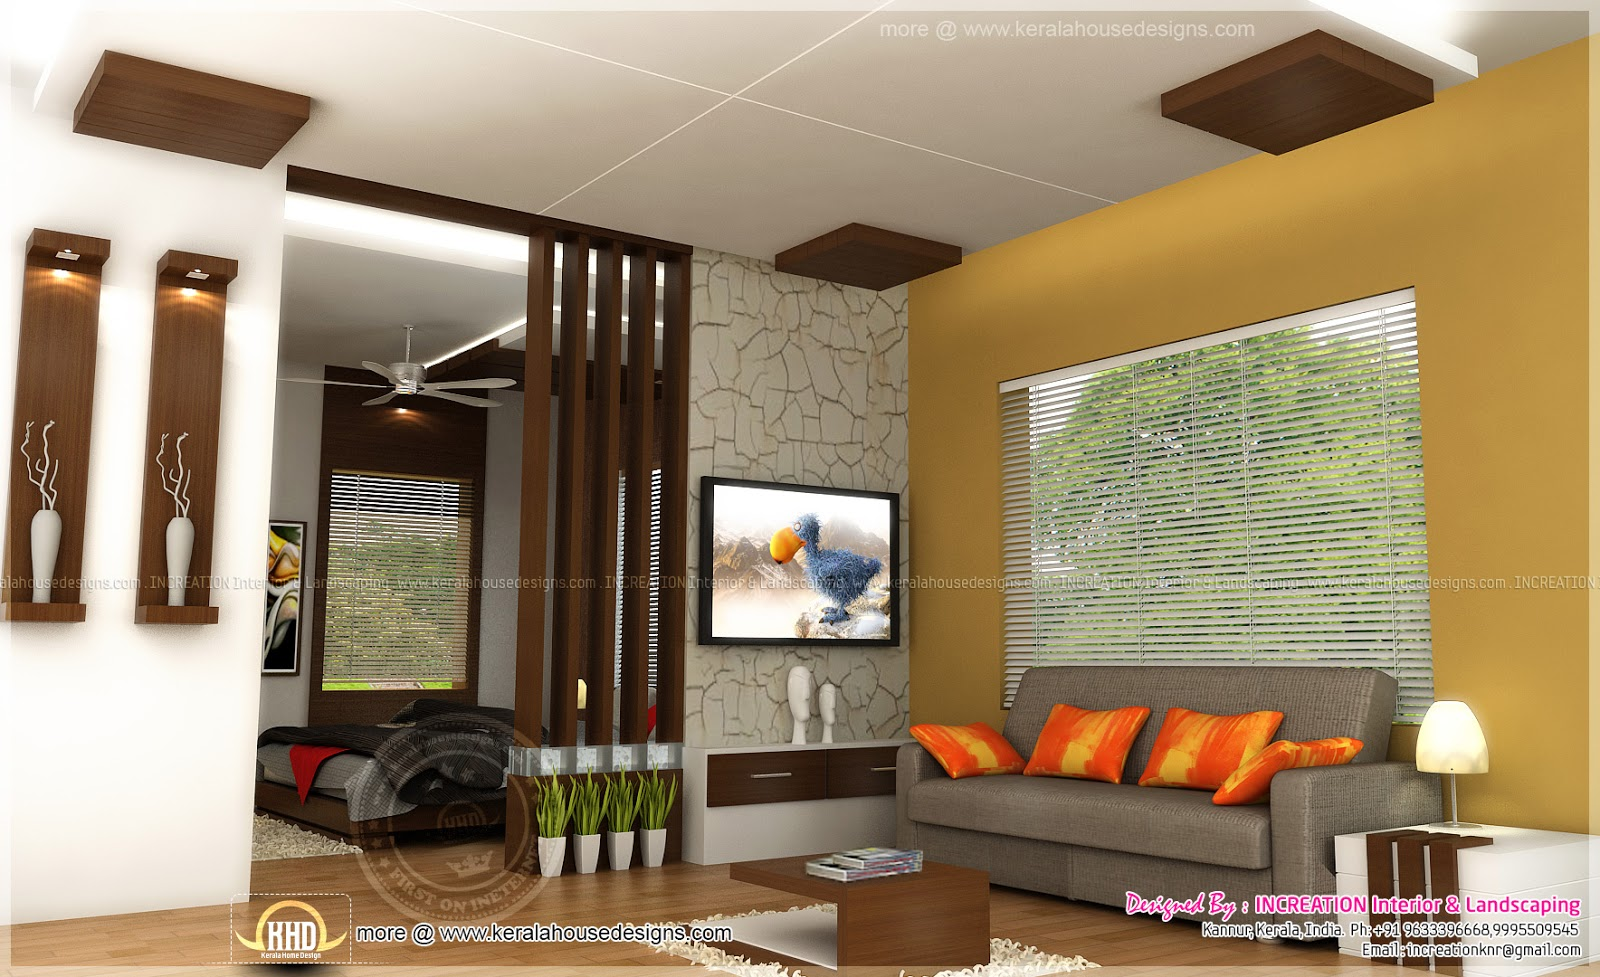 Interior designs from kannur kerala kerala home design for Home interior drawing room